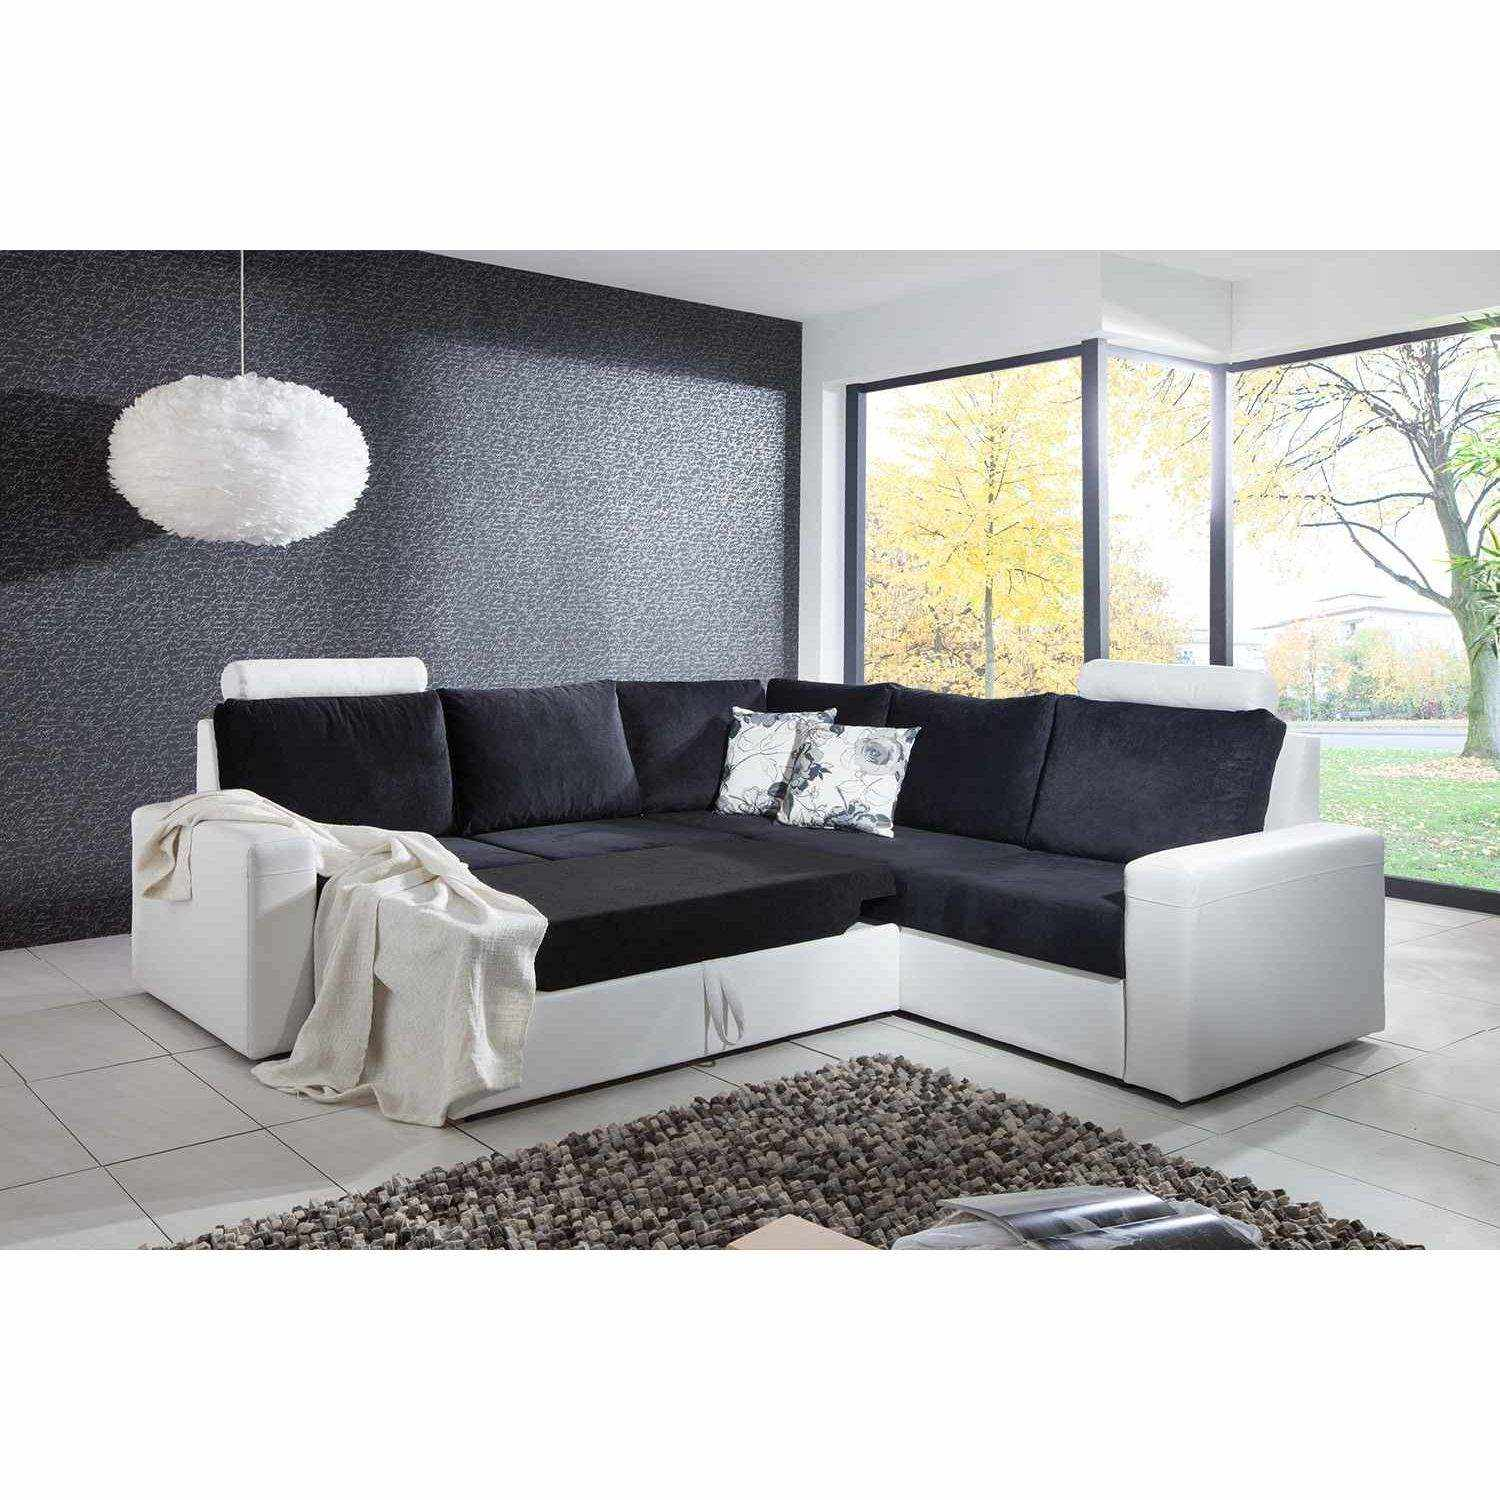 deco in paris canape d angle convertible noir et blanc. Black Bedroom Furniture Sets. Home Design Ideas